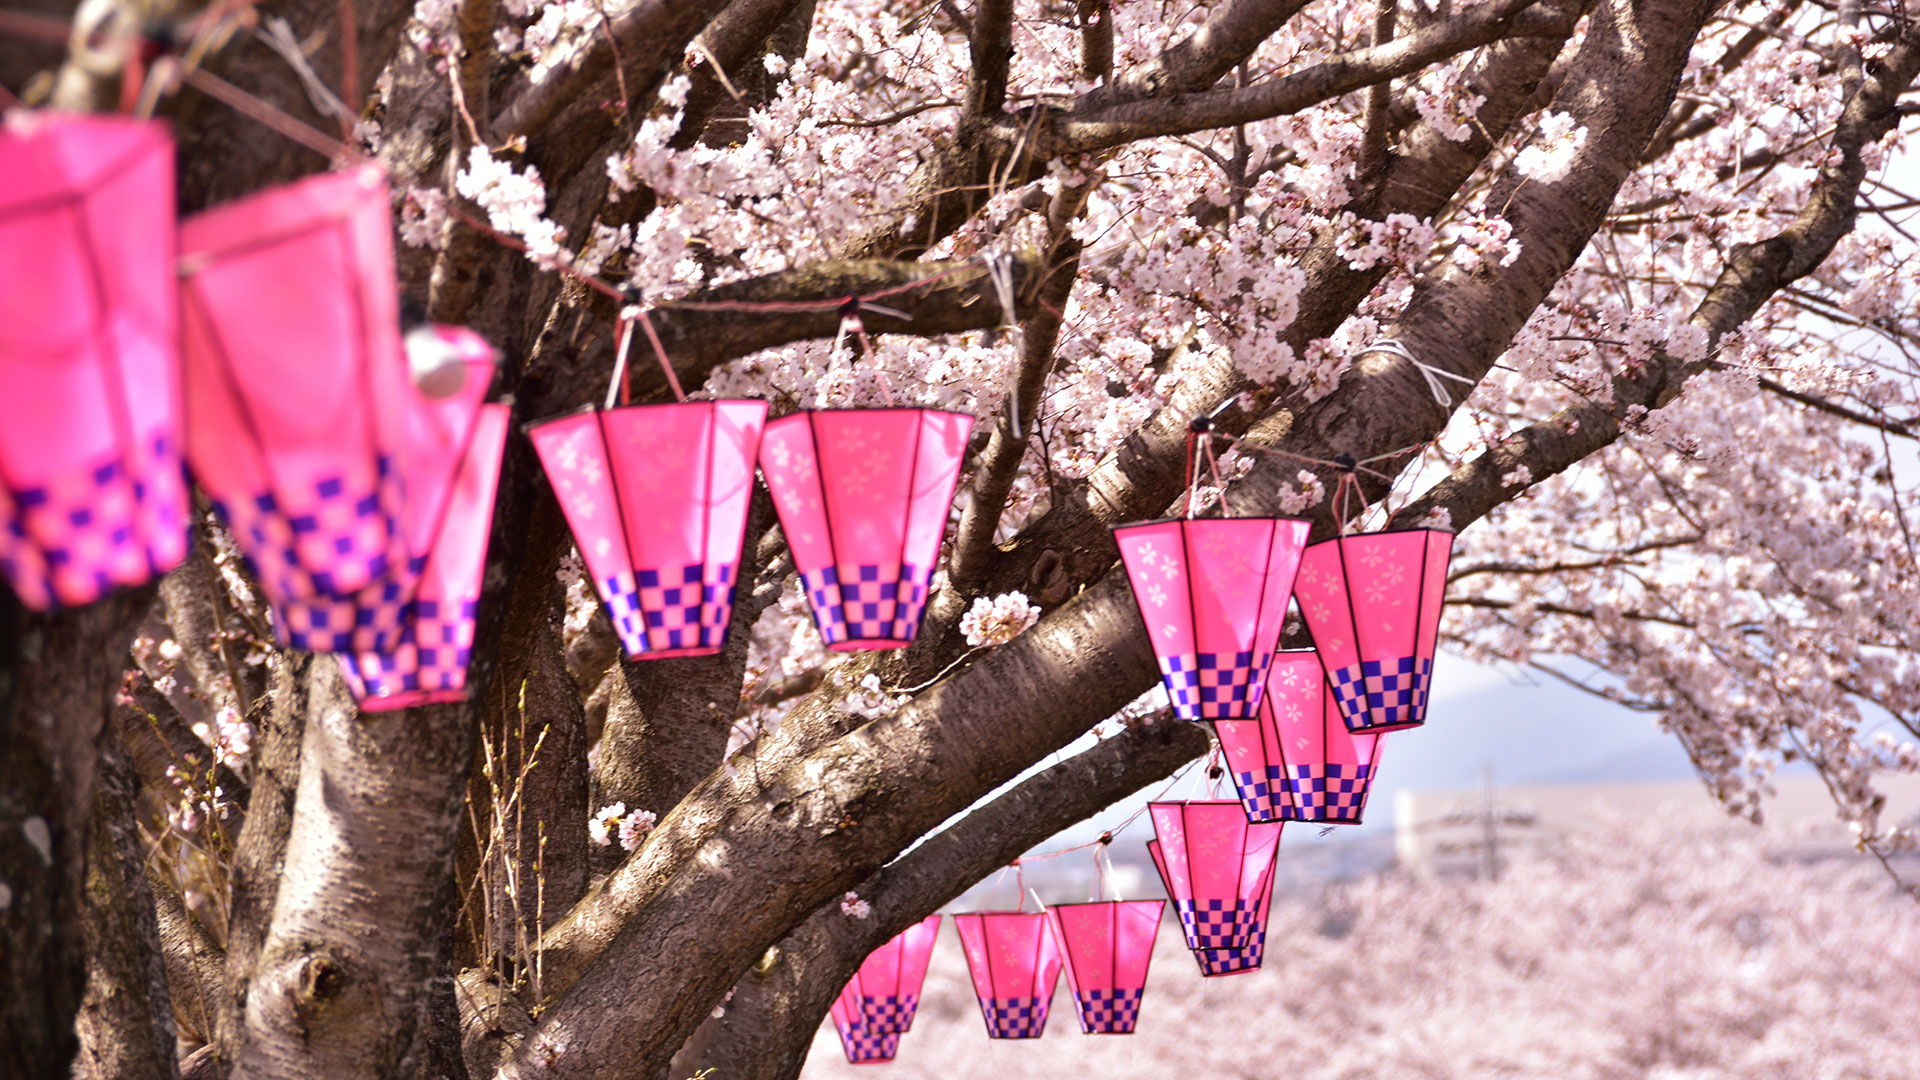 All You Need To Know About Sakura The Japanese Cherry Blossom